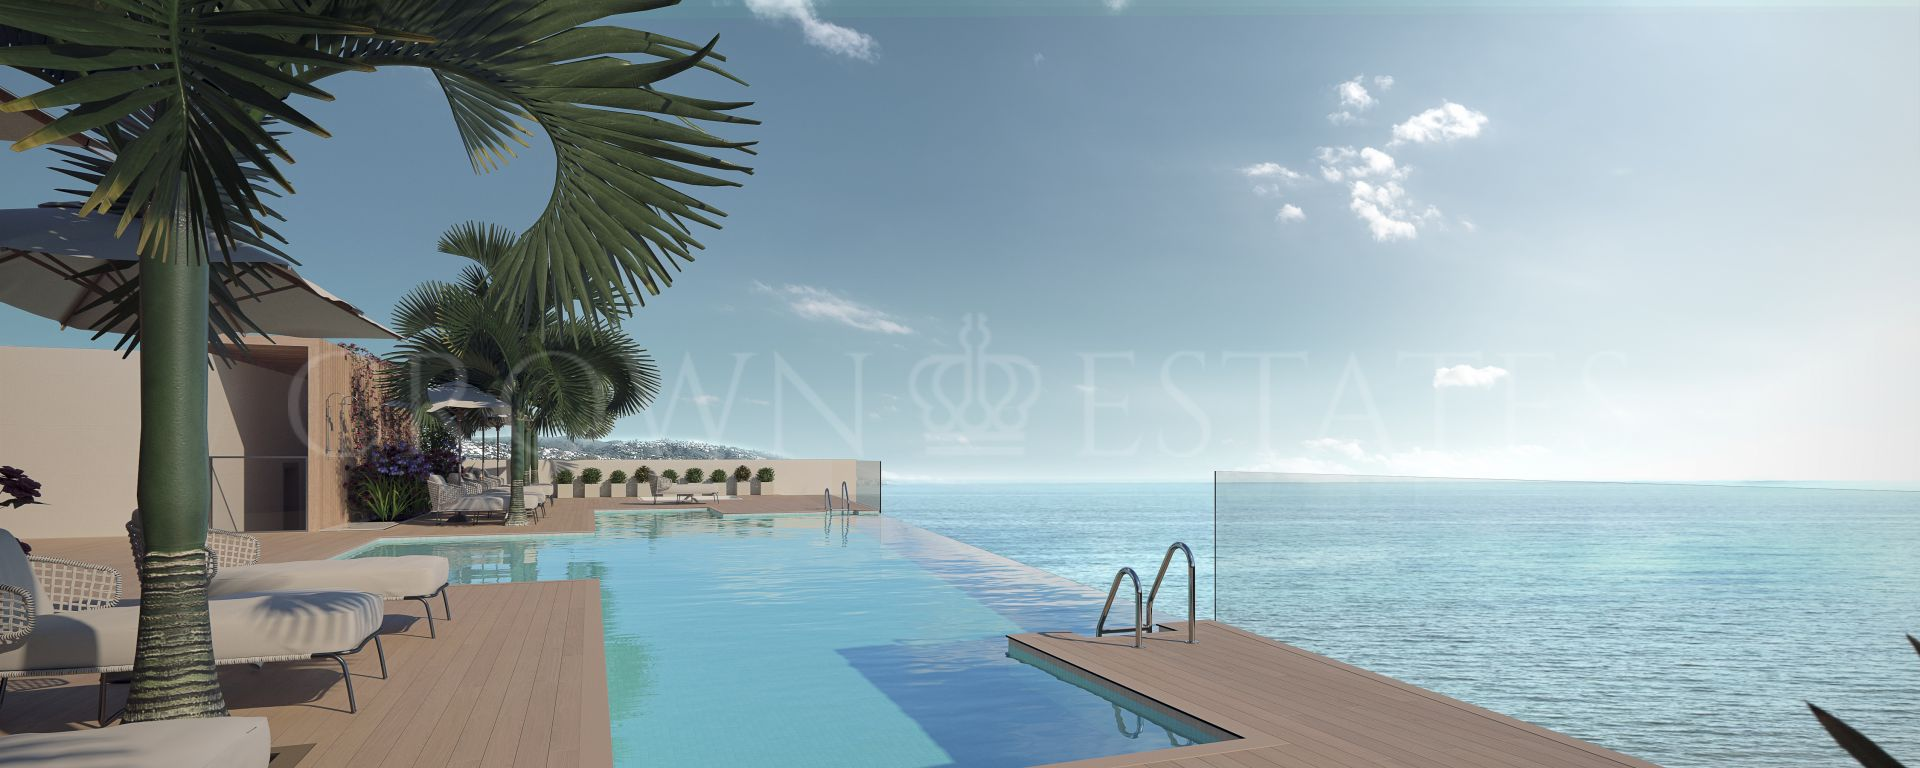 36 exclusive homes on sea front location, with spacious terraces that meet therequirements of the most demanding of clients.